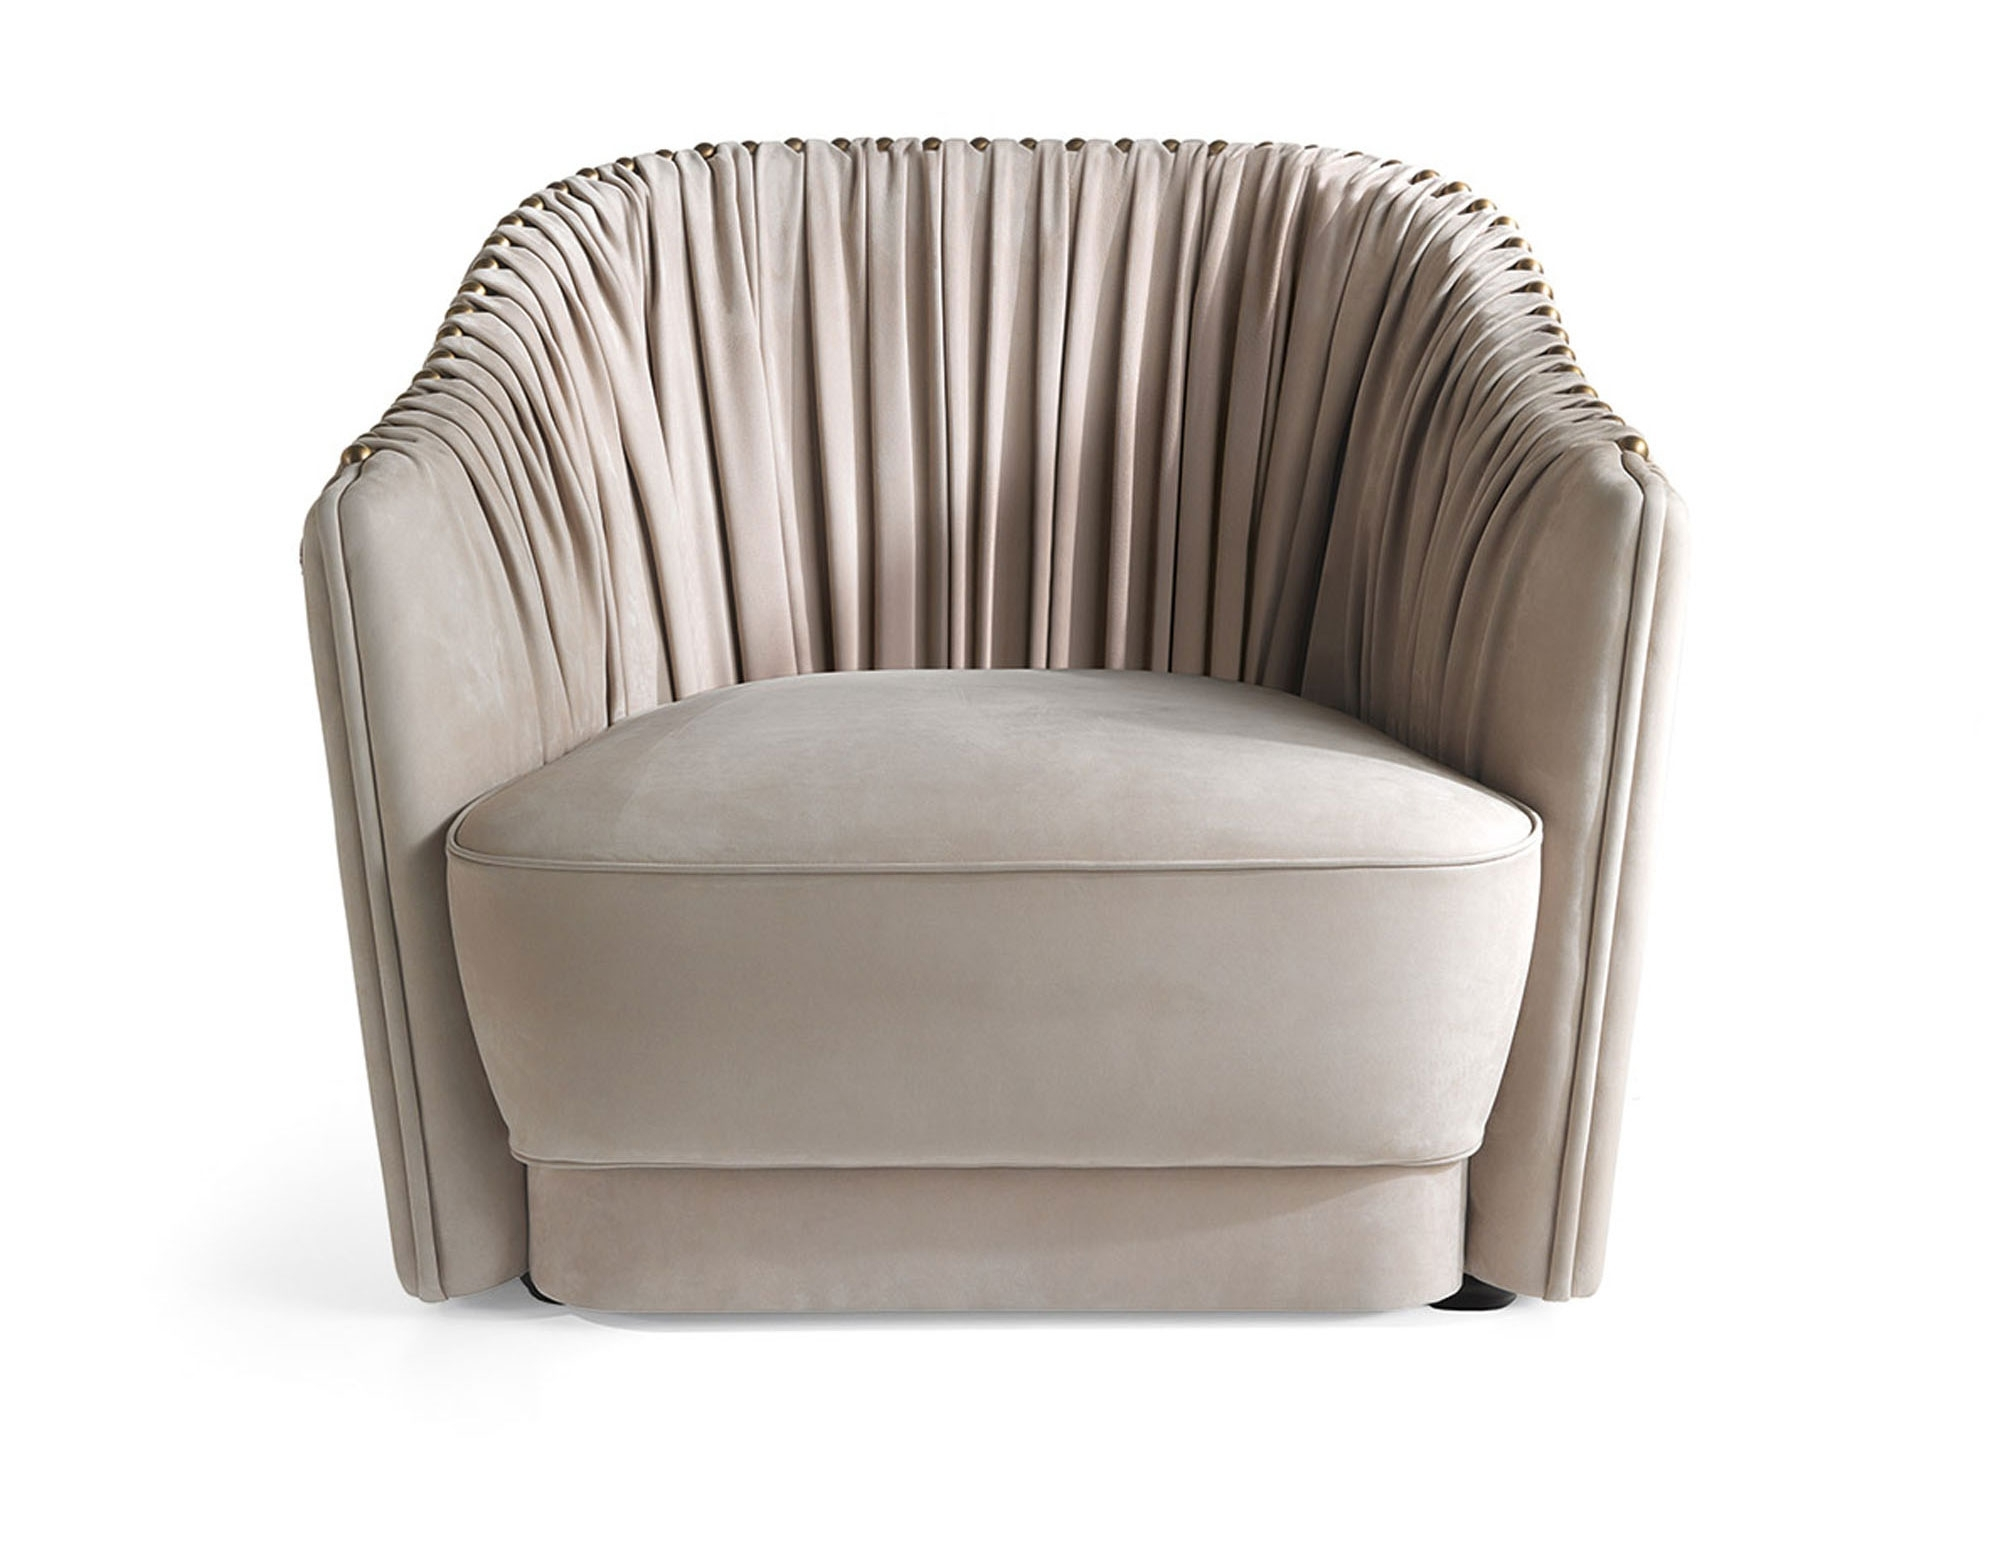 Popular Sofas And Chairs Intended For Nella Vetrina Sharpei Roberto Cavalli Home Modern Luxury Italian (View 12 of 20)